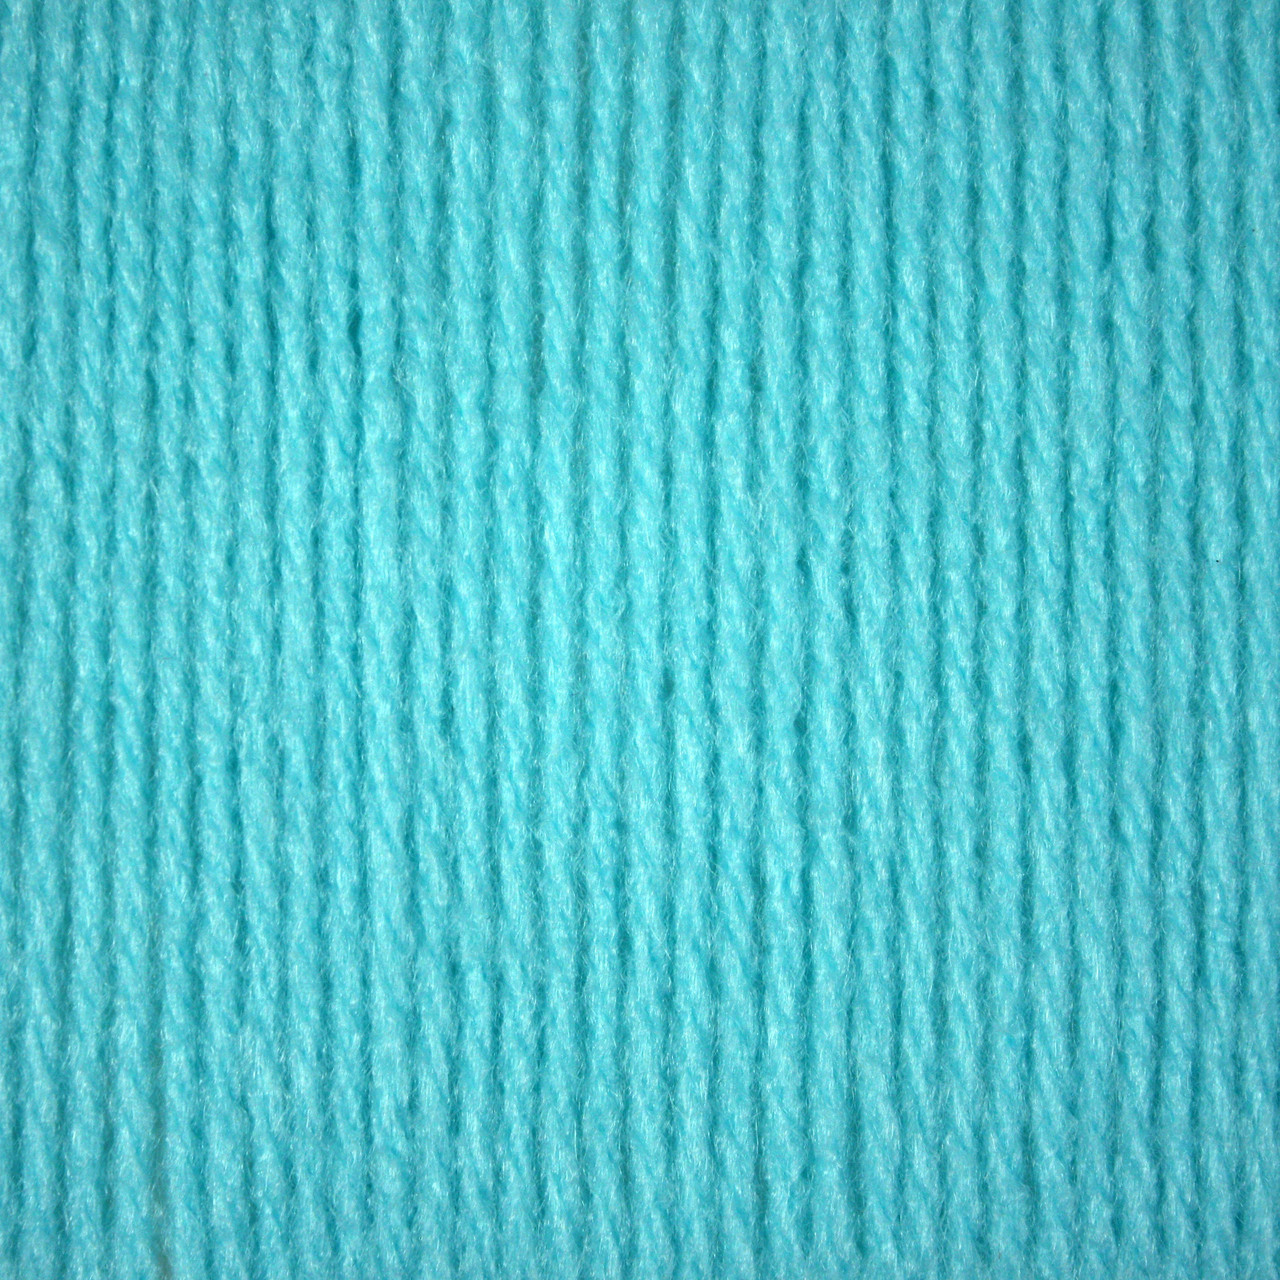 Bernat Cool Blue Super Value Yarn 4 Medium Free